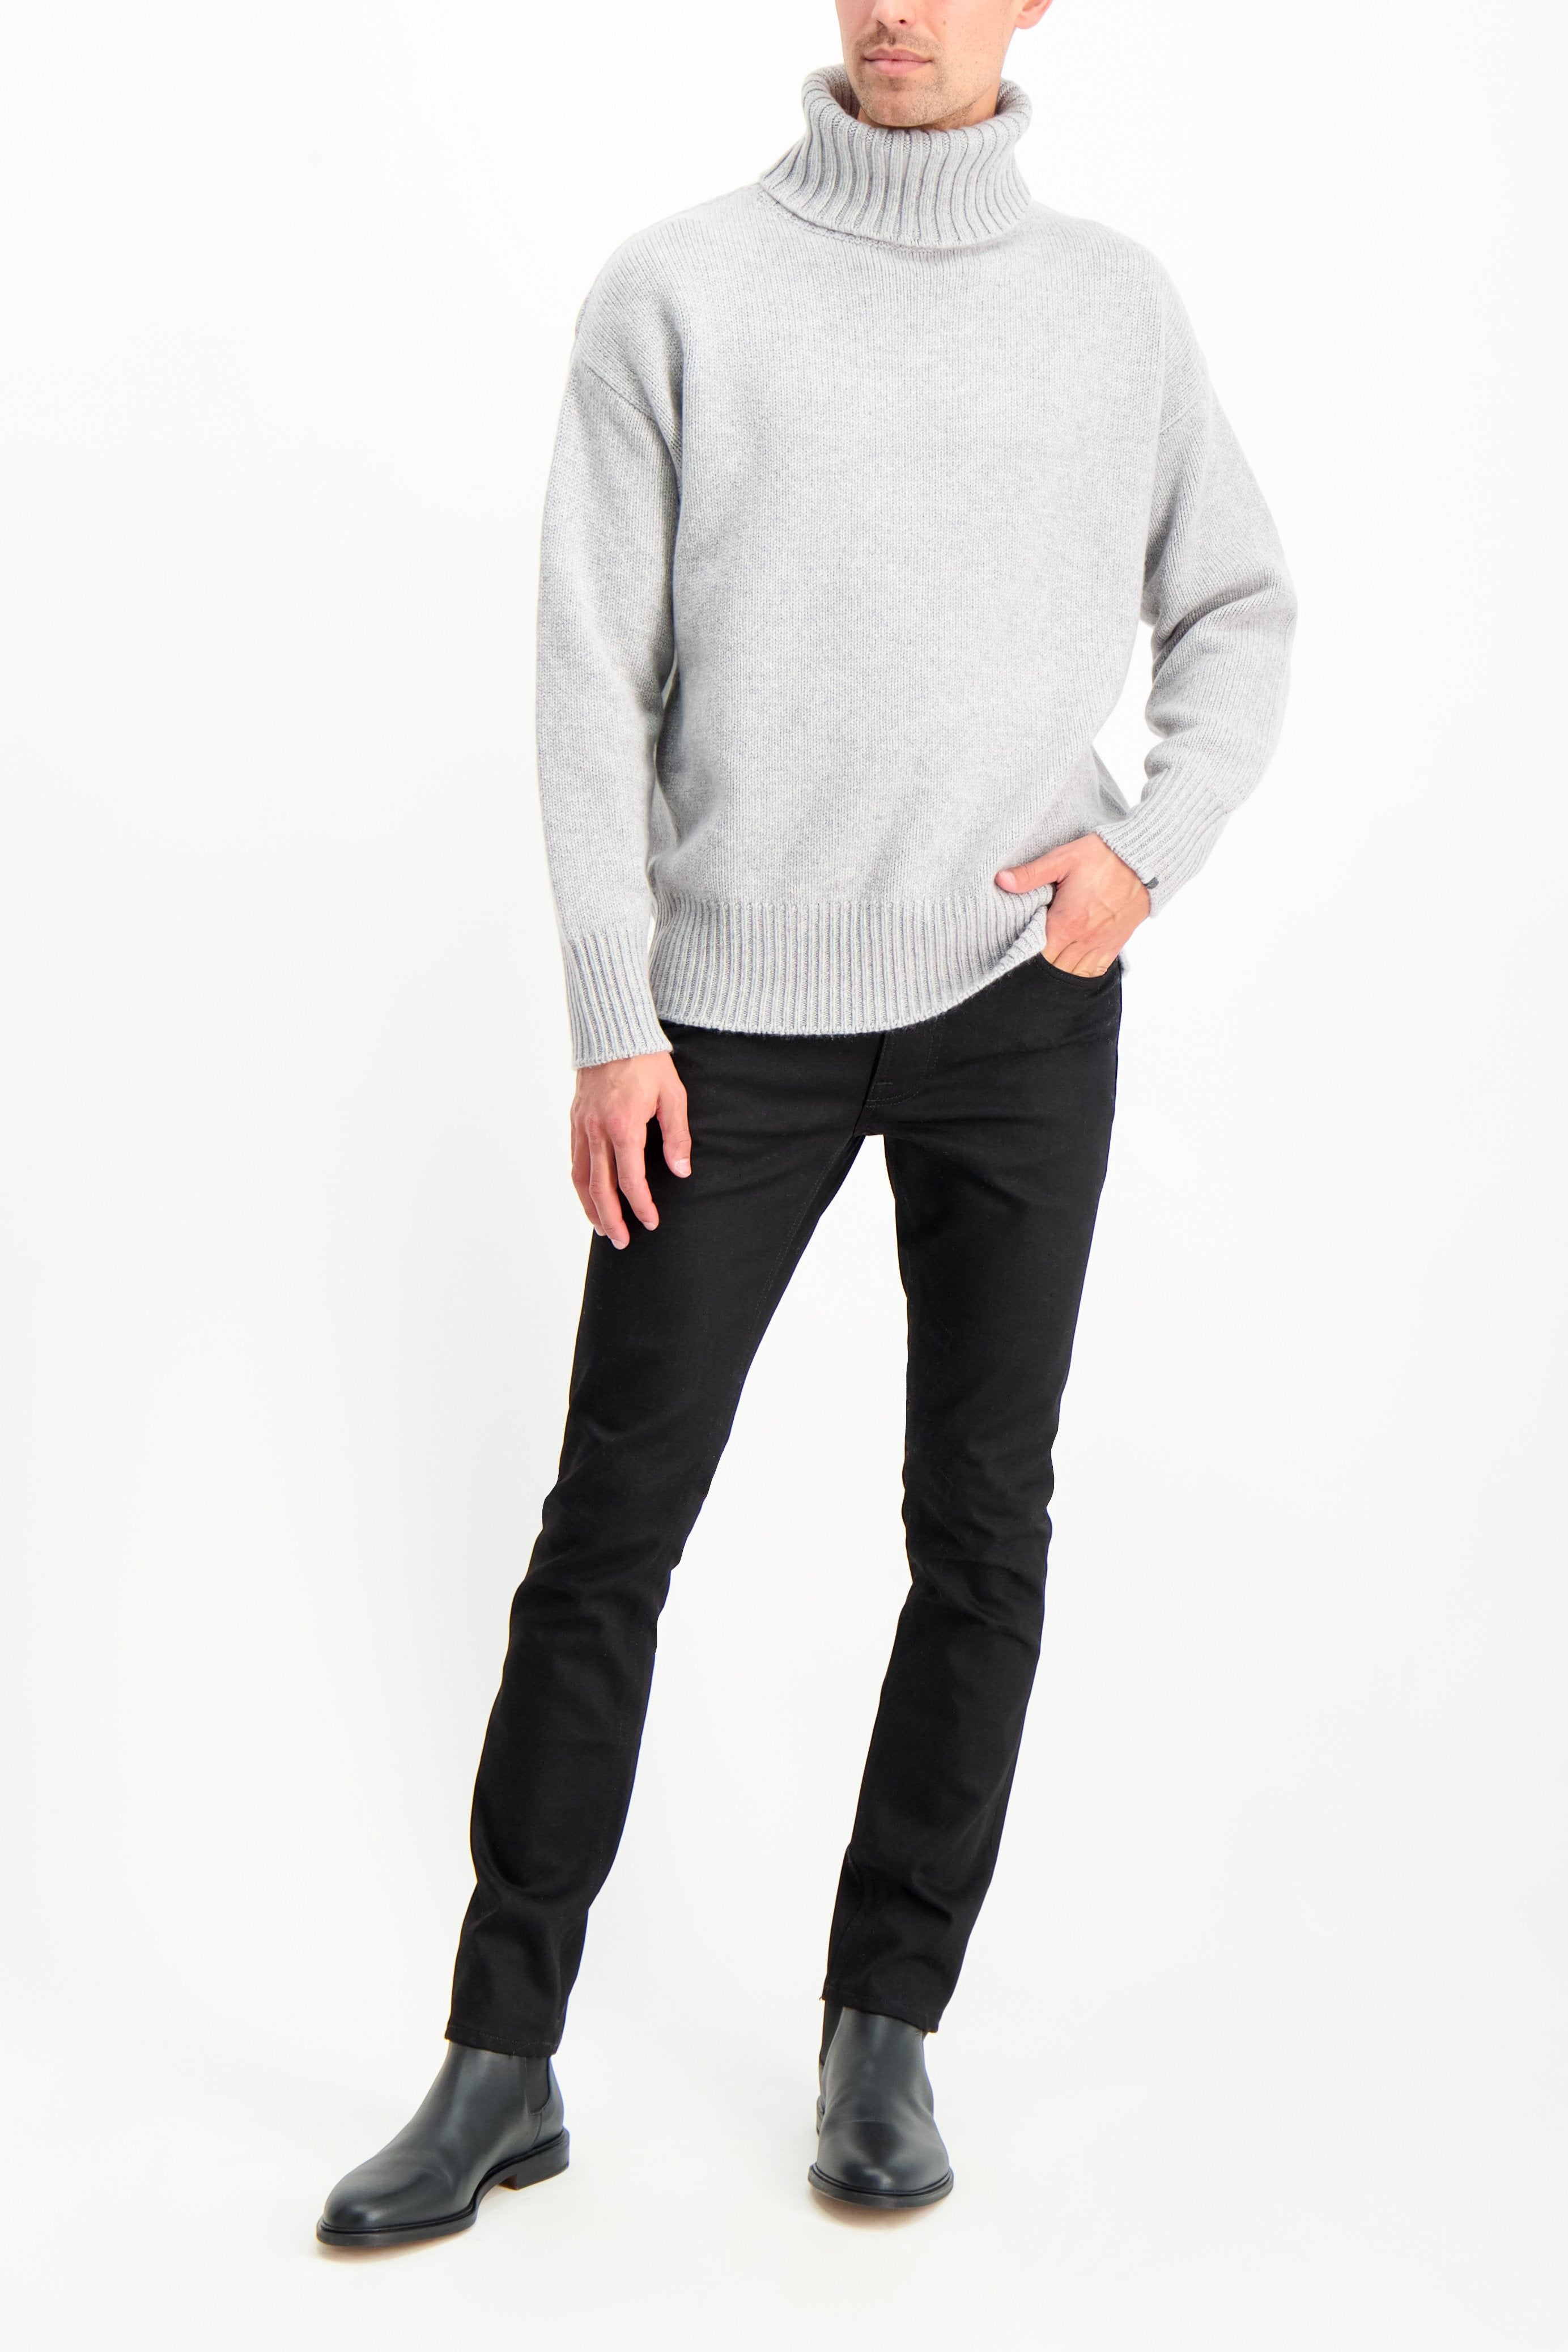 Full Body Image Of Model Wearing Extreme Cashmere N°20 Oversize Xtra Sweater Grey